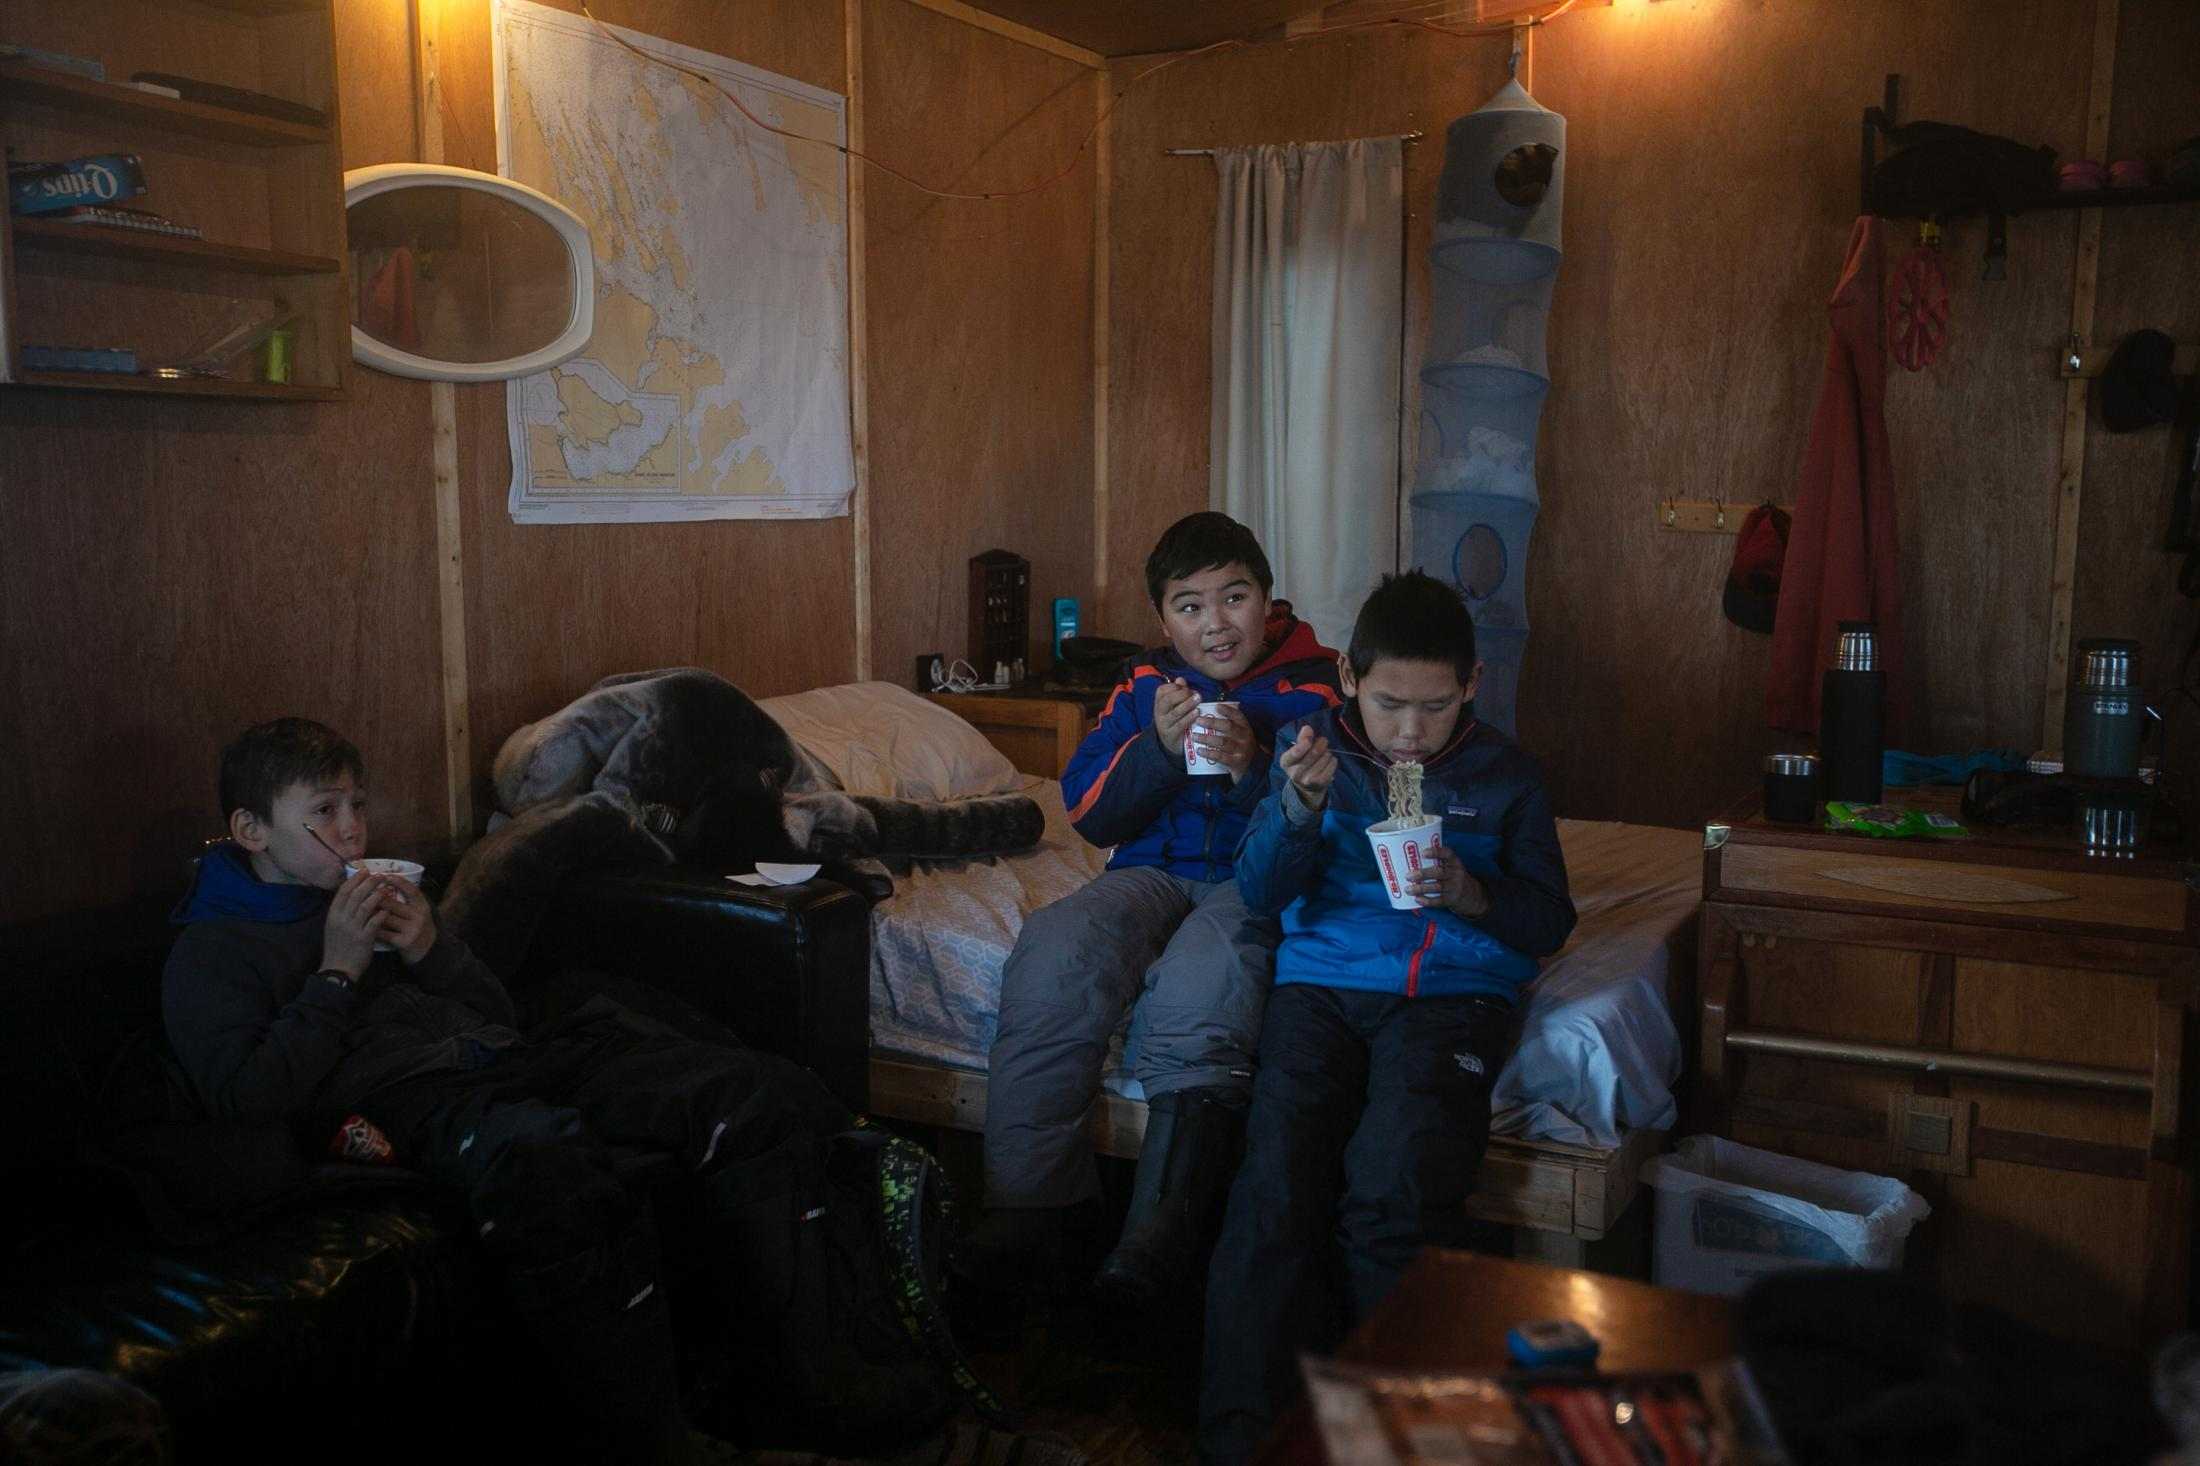 The hunting group stops for lunch at Kevin Kullualik's cabin, during which the younger boys watched The Goonies.